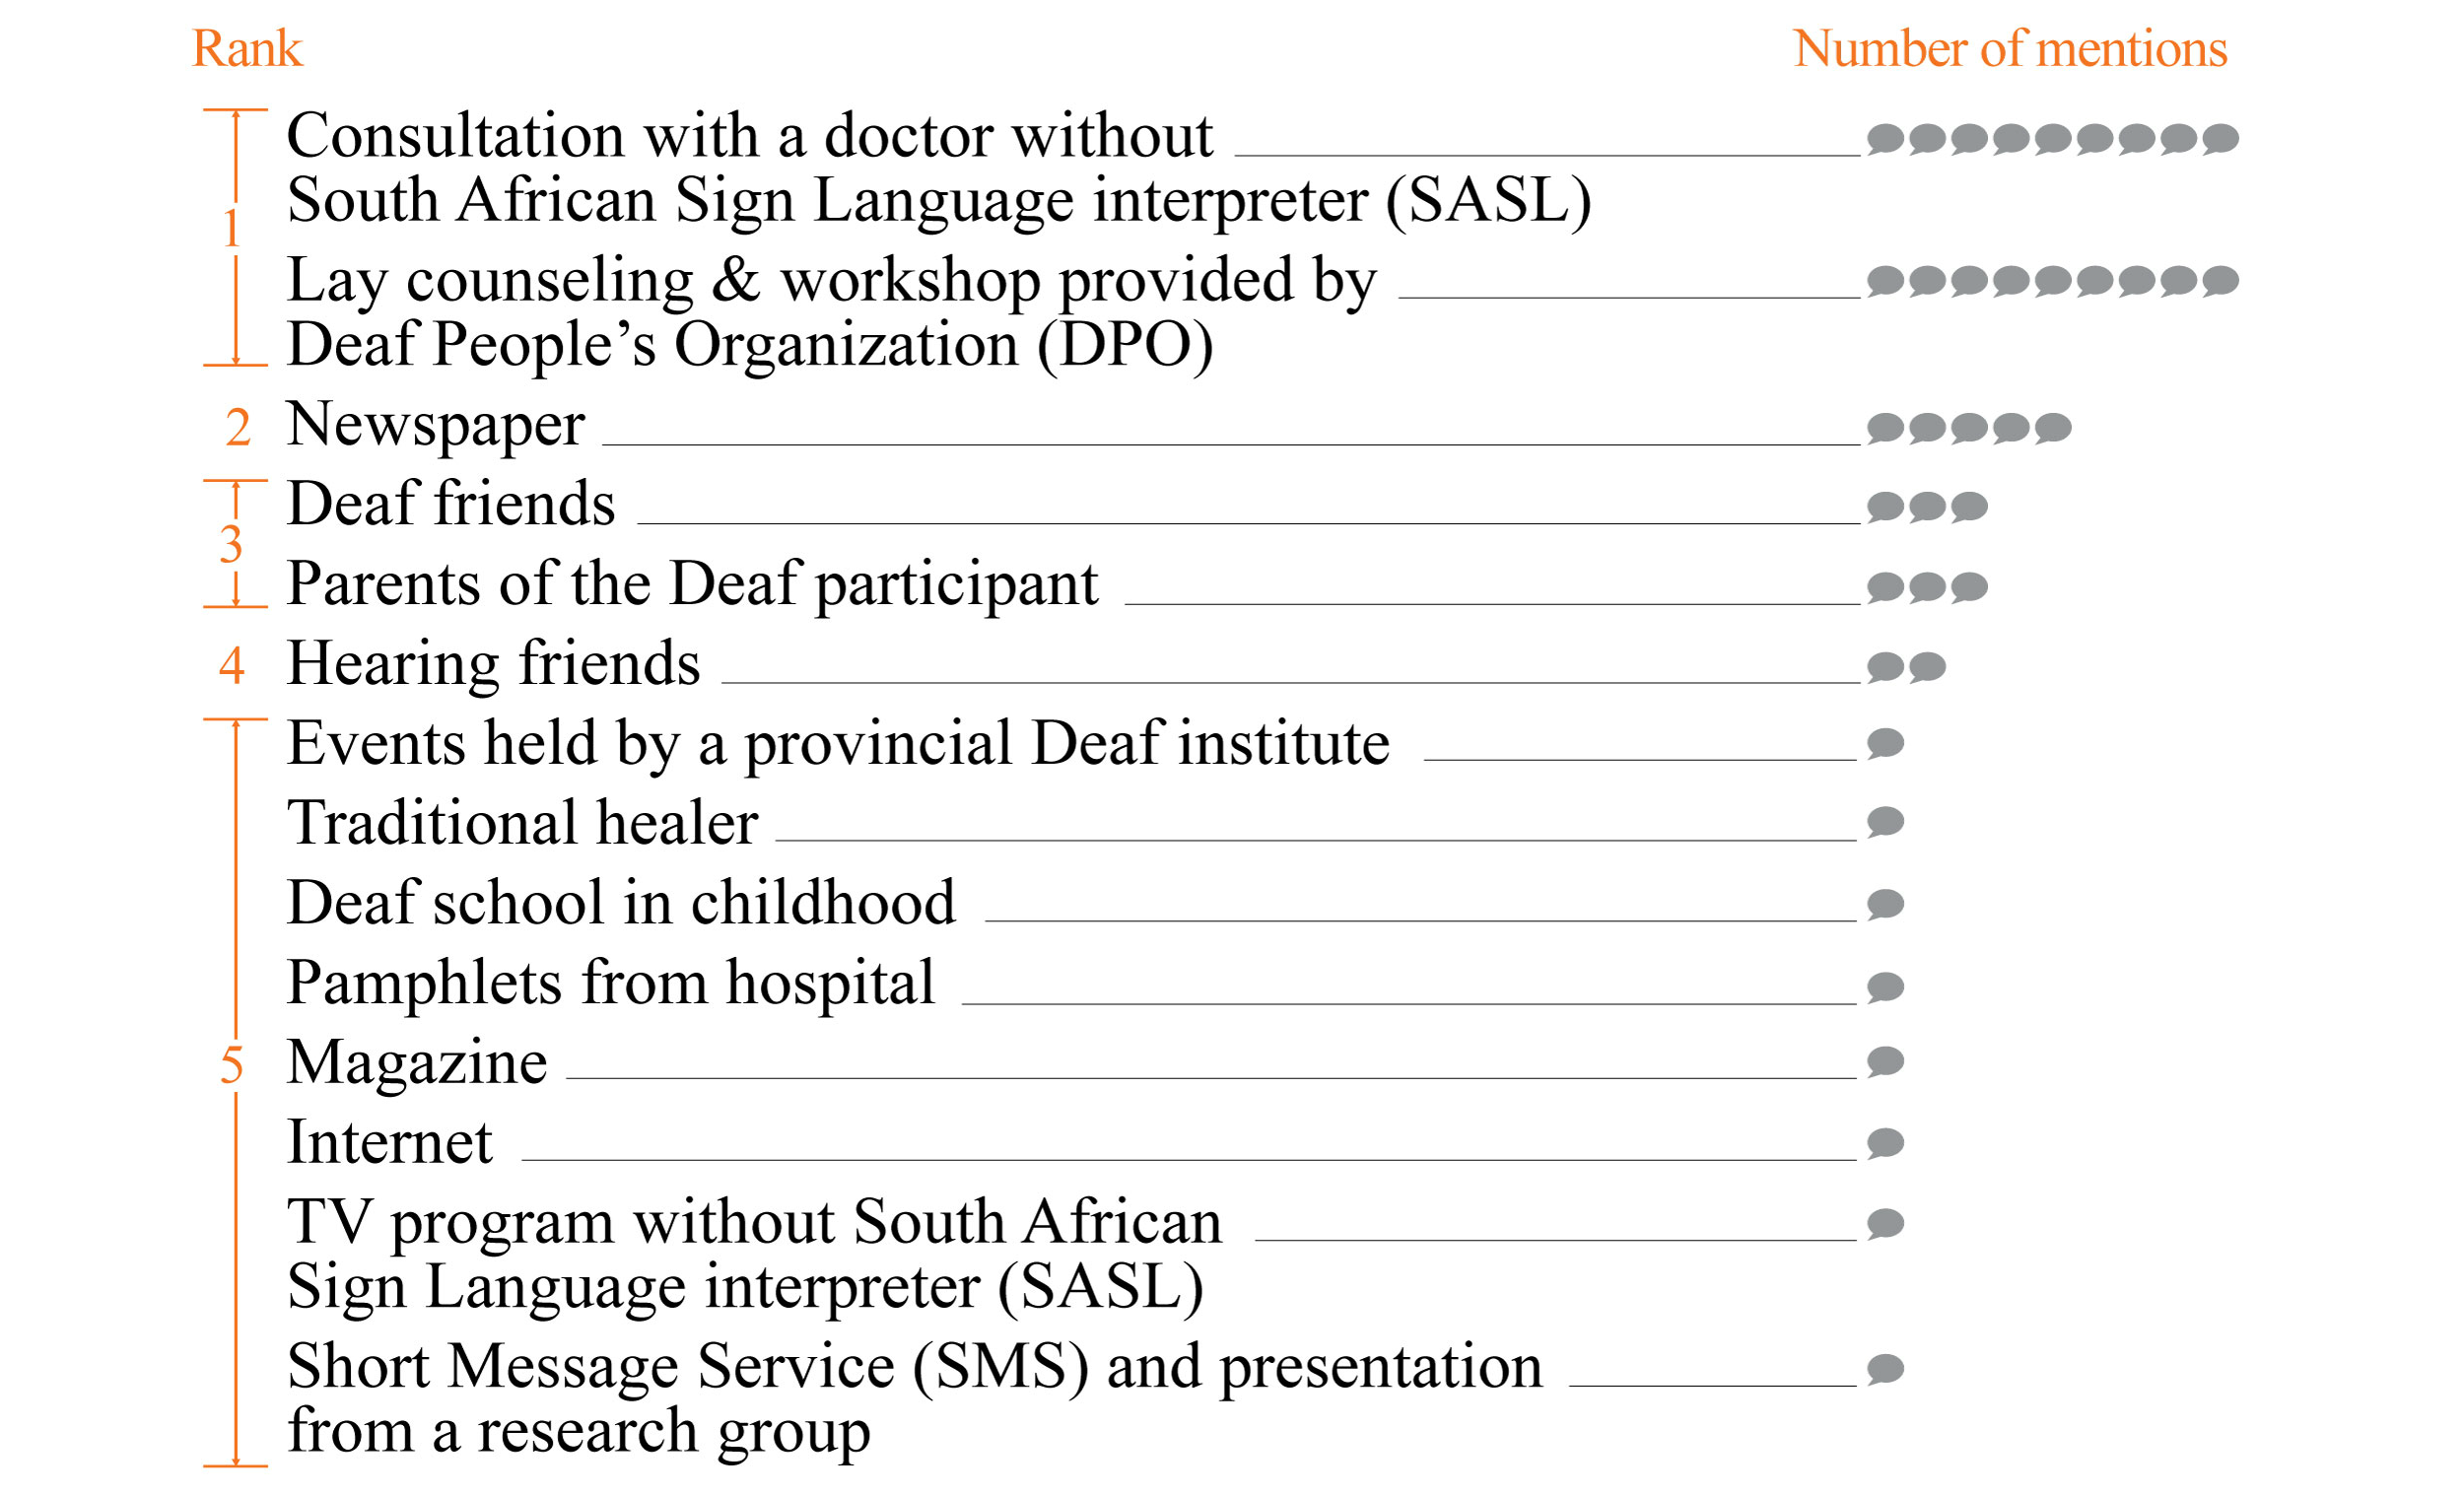 JHF - Exploration of Deaf People's Health Information Sources and